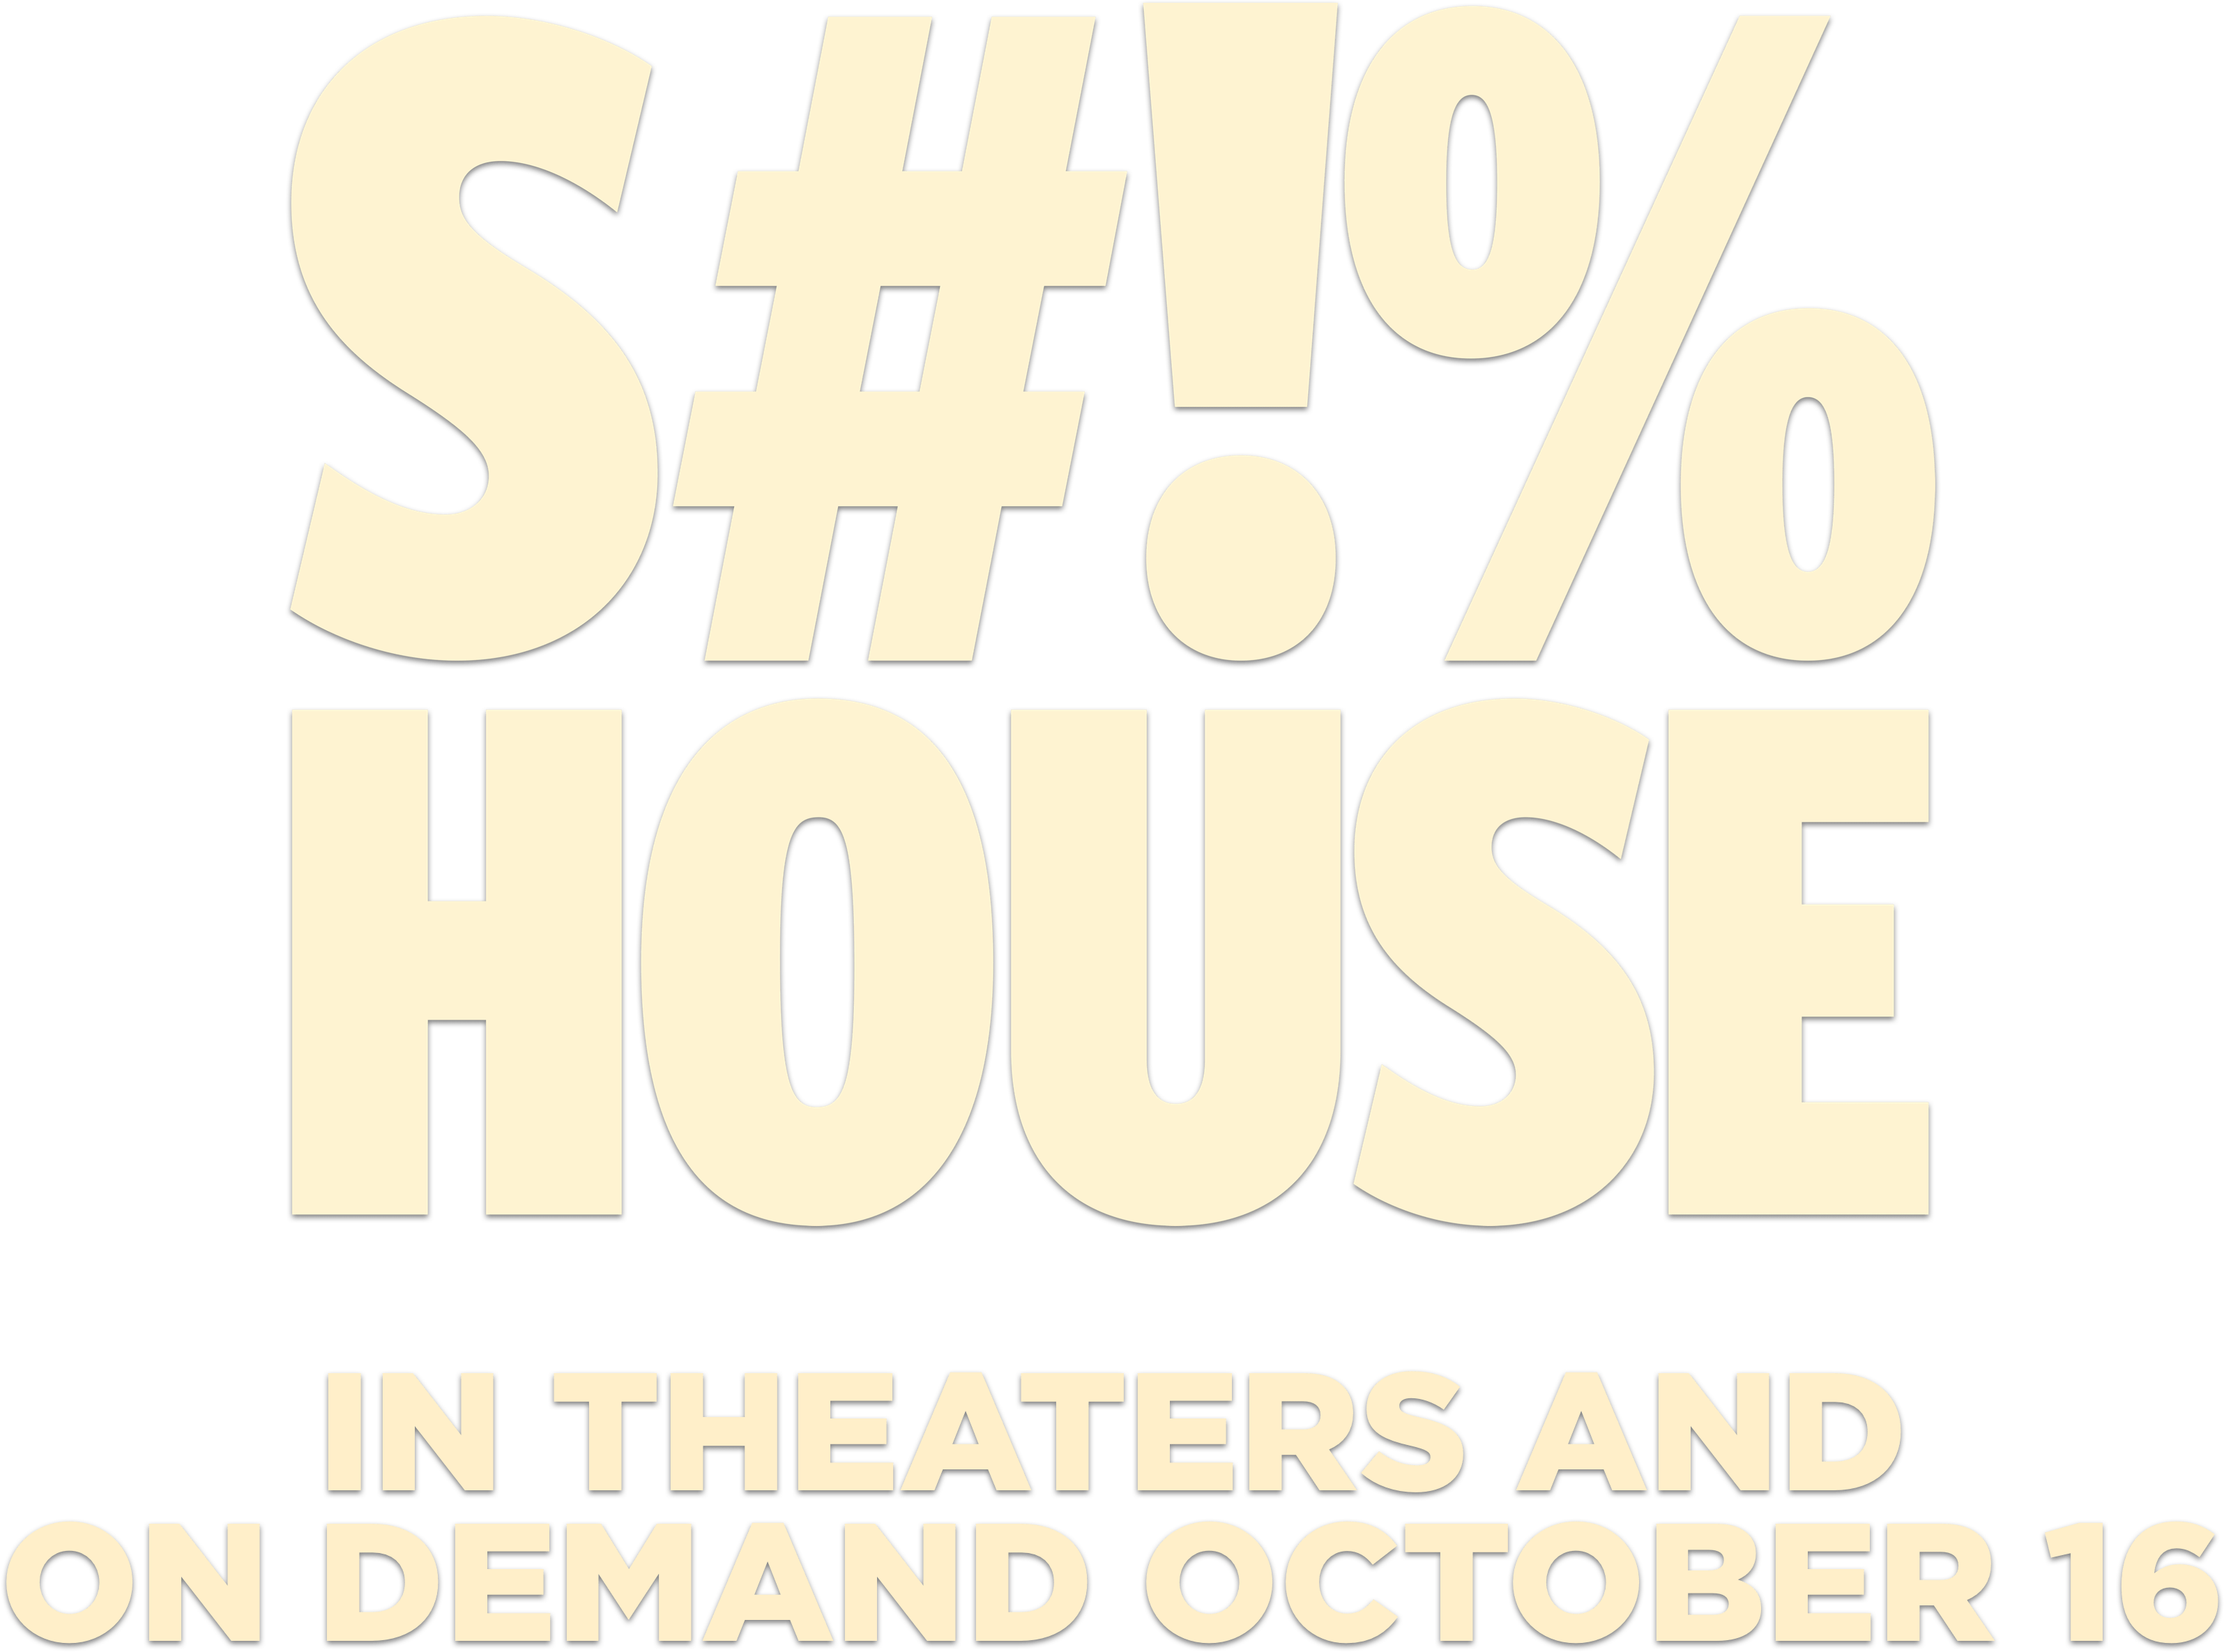 Shithouse: Synopsis | IFC Films